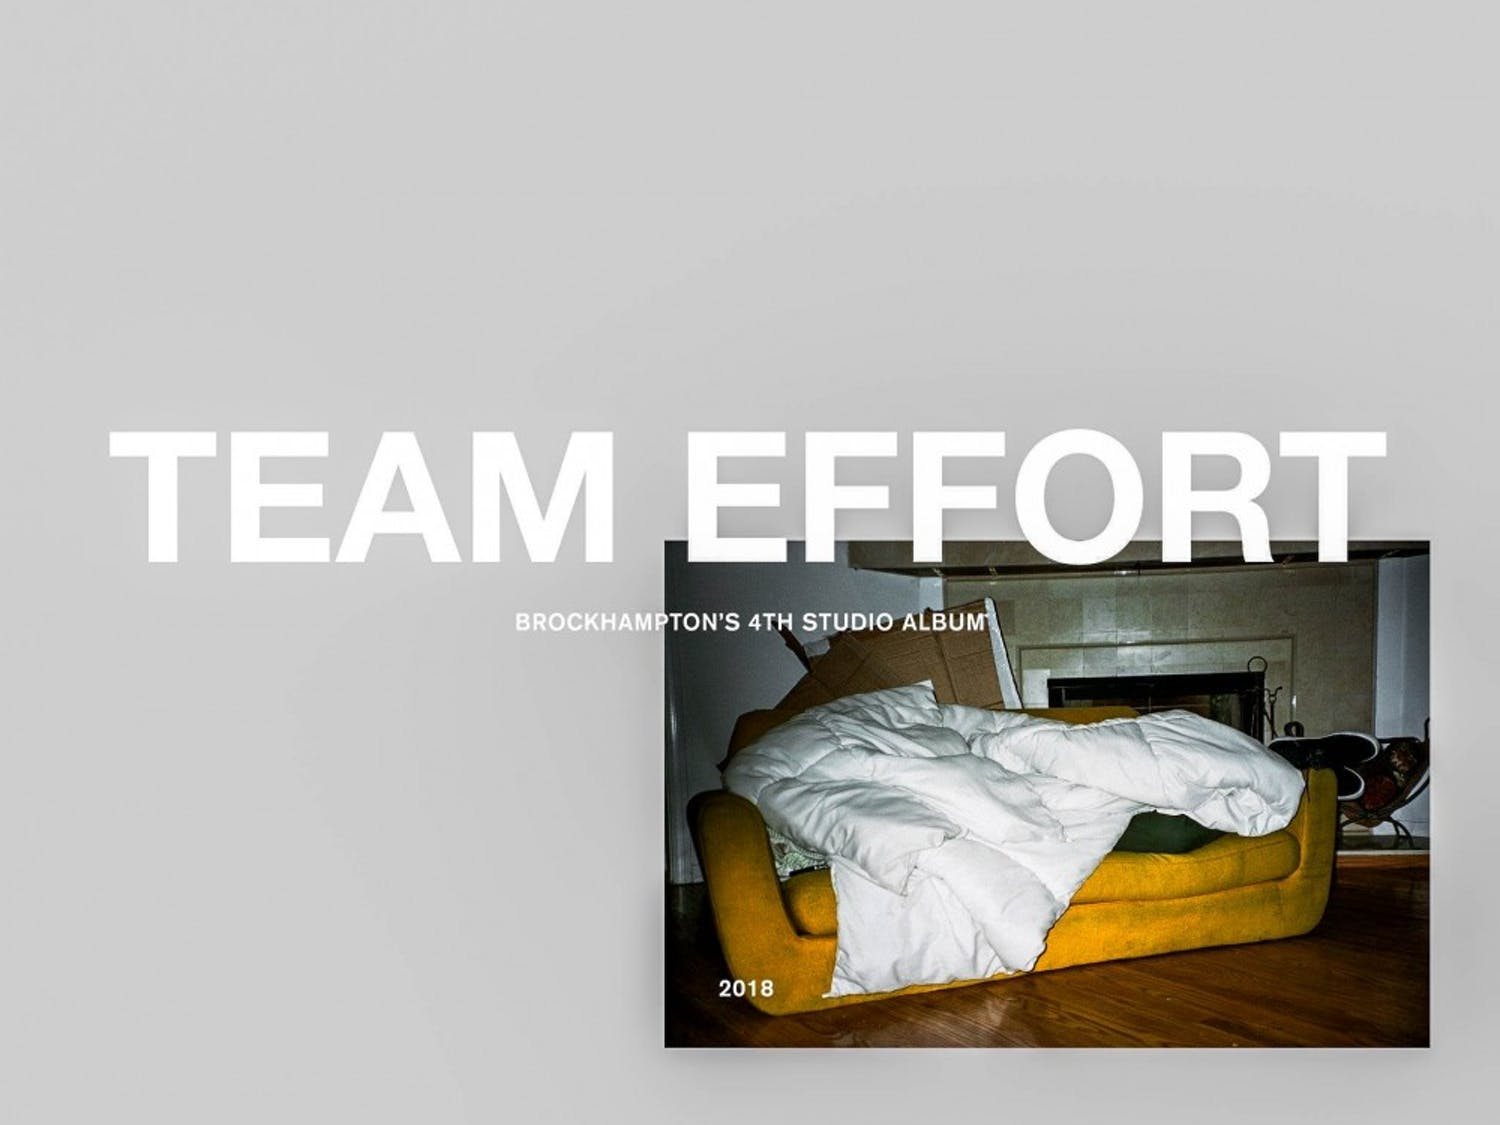 """Brockhampton, music's current big boyband, is expected to drop it's fourth studio album """"Team Effort"""" sometime this semester. This project will be the follow-up to their popular """"Saturation"""" trilogy, making it a must-listen this semester."""